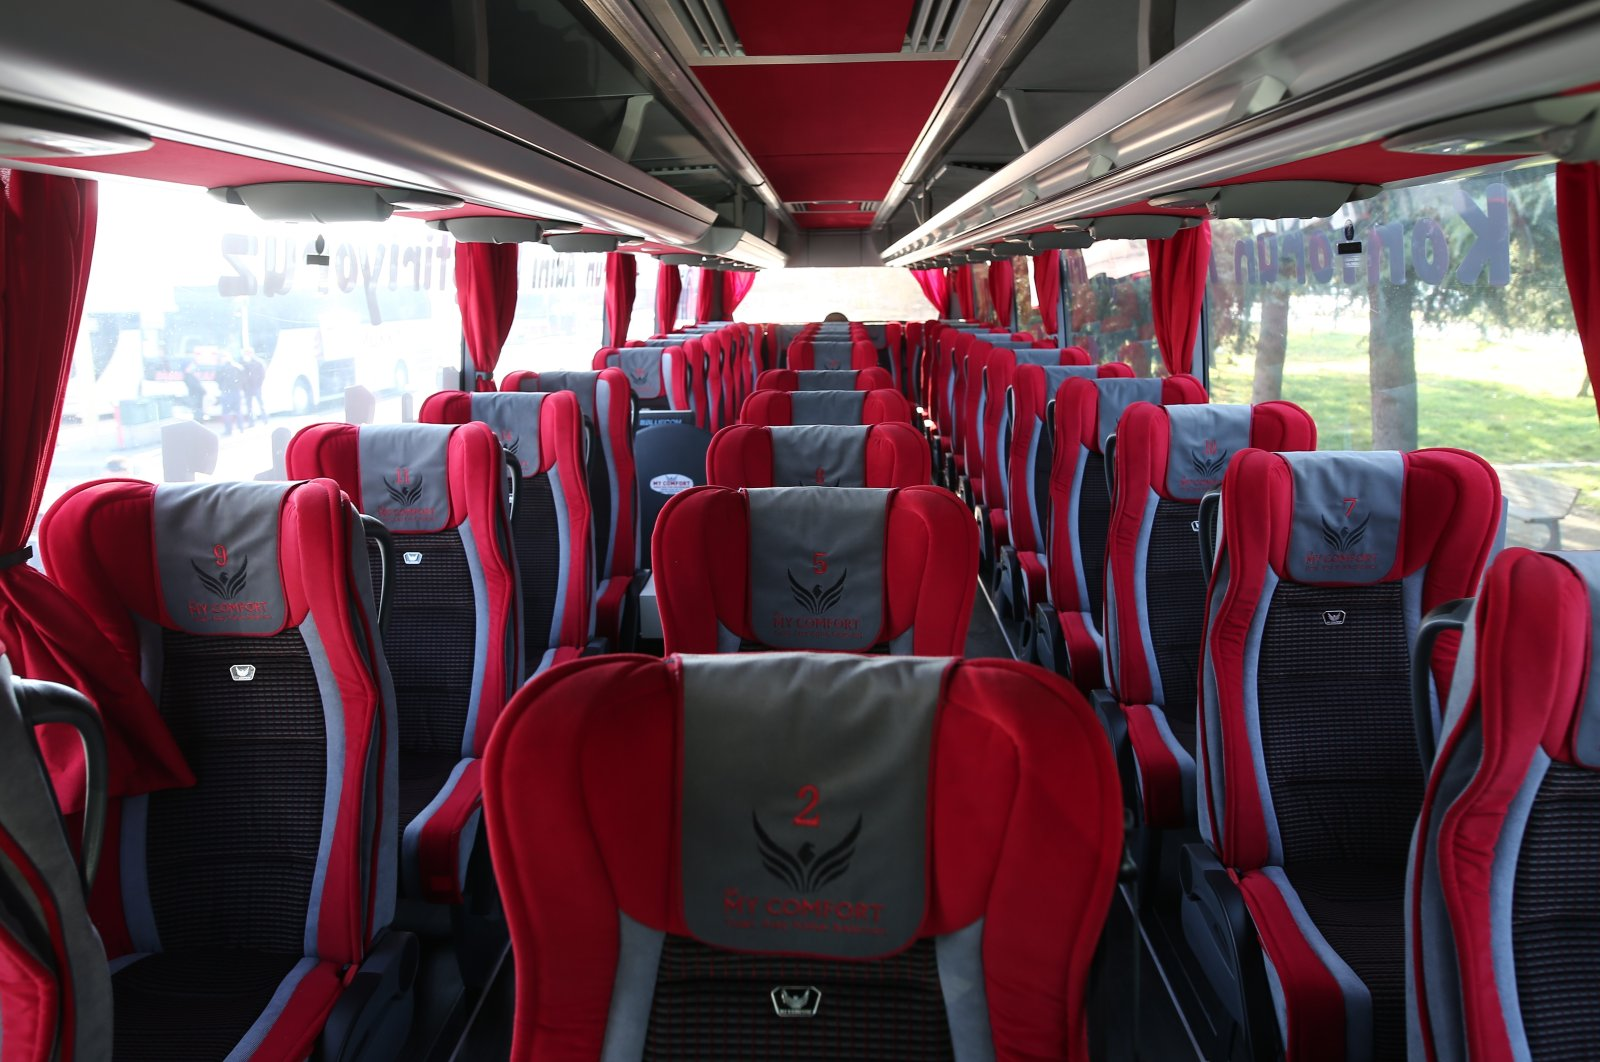 An internal view of the bus, in Bursa, northwestern Turkey, Nov. 24, 2020. (İHA Photo)